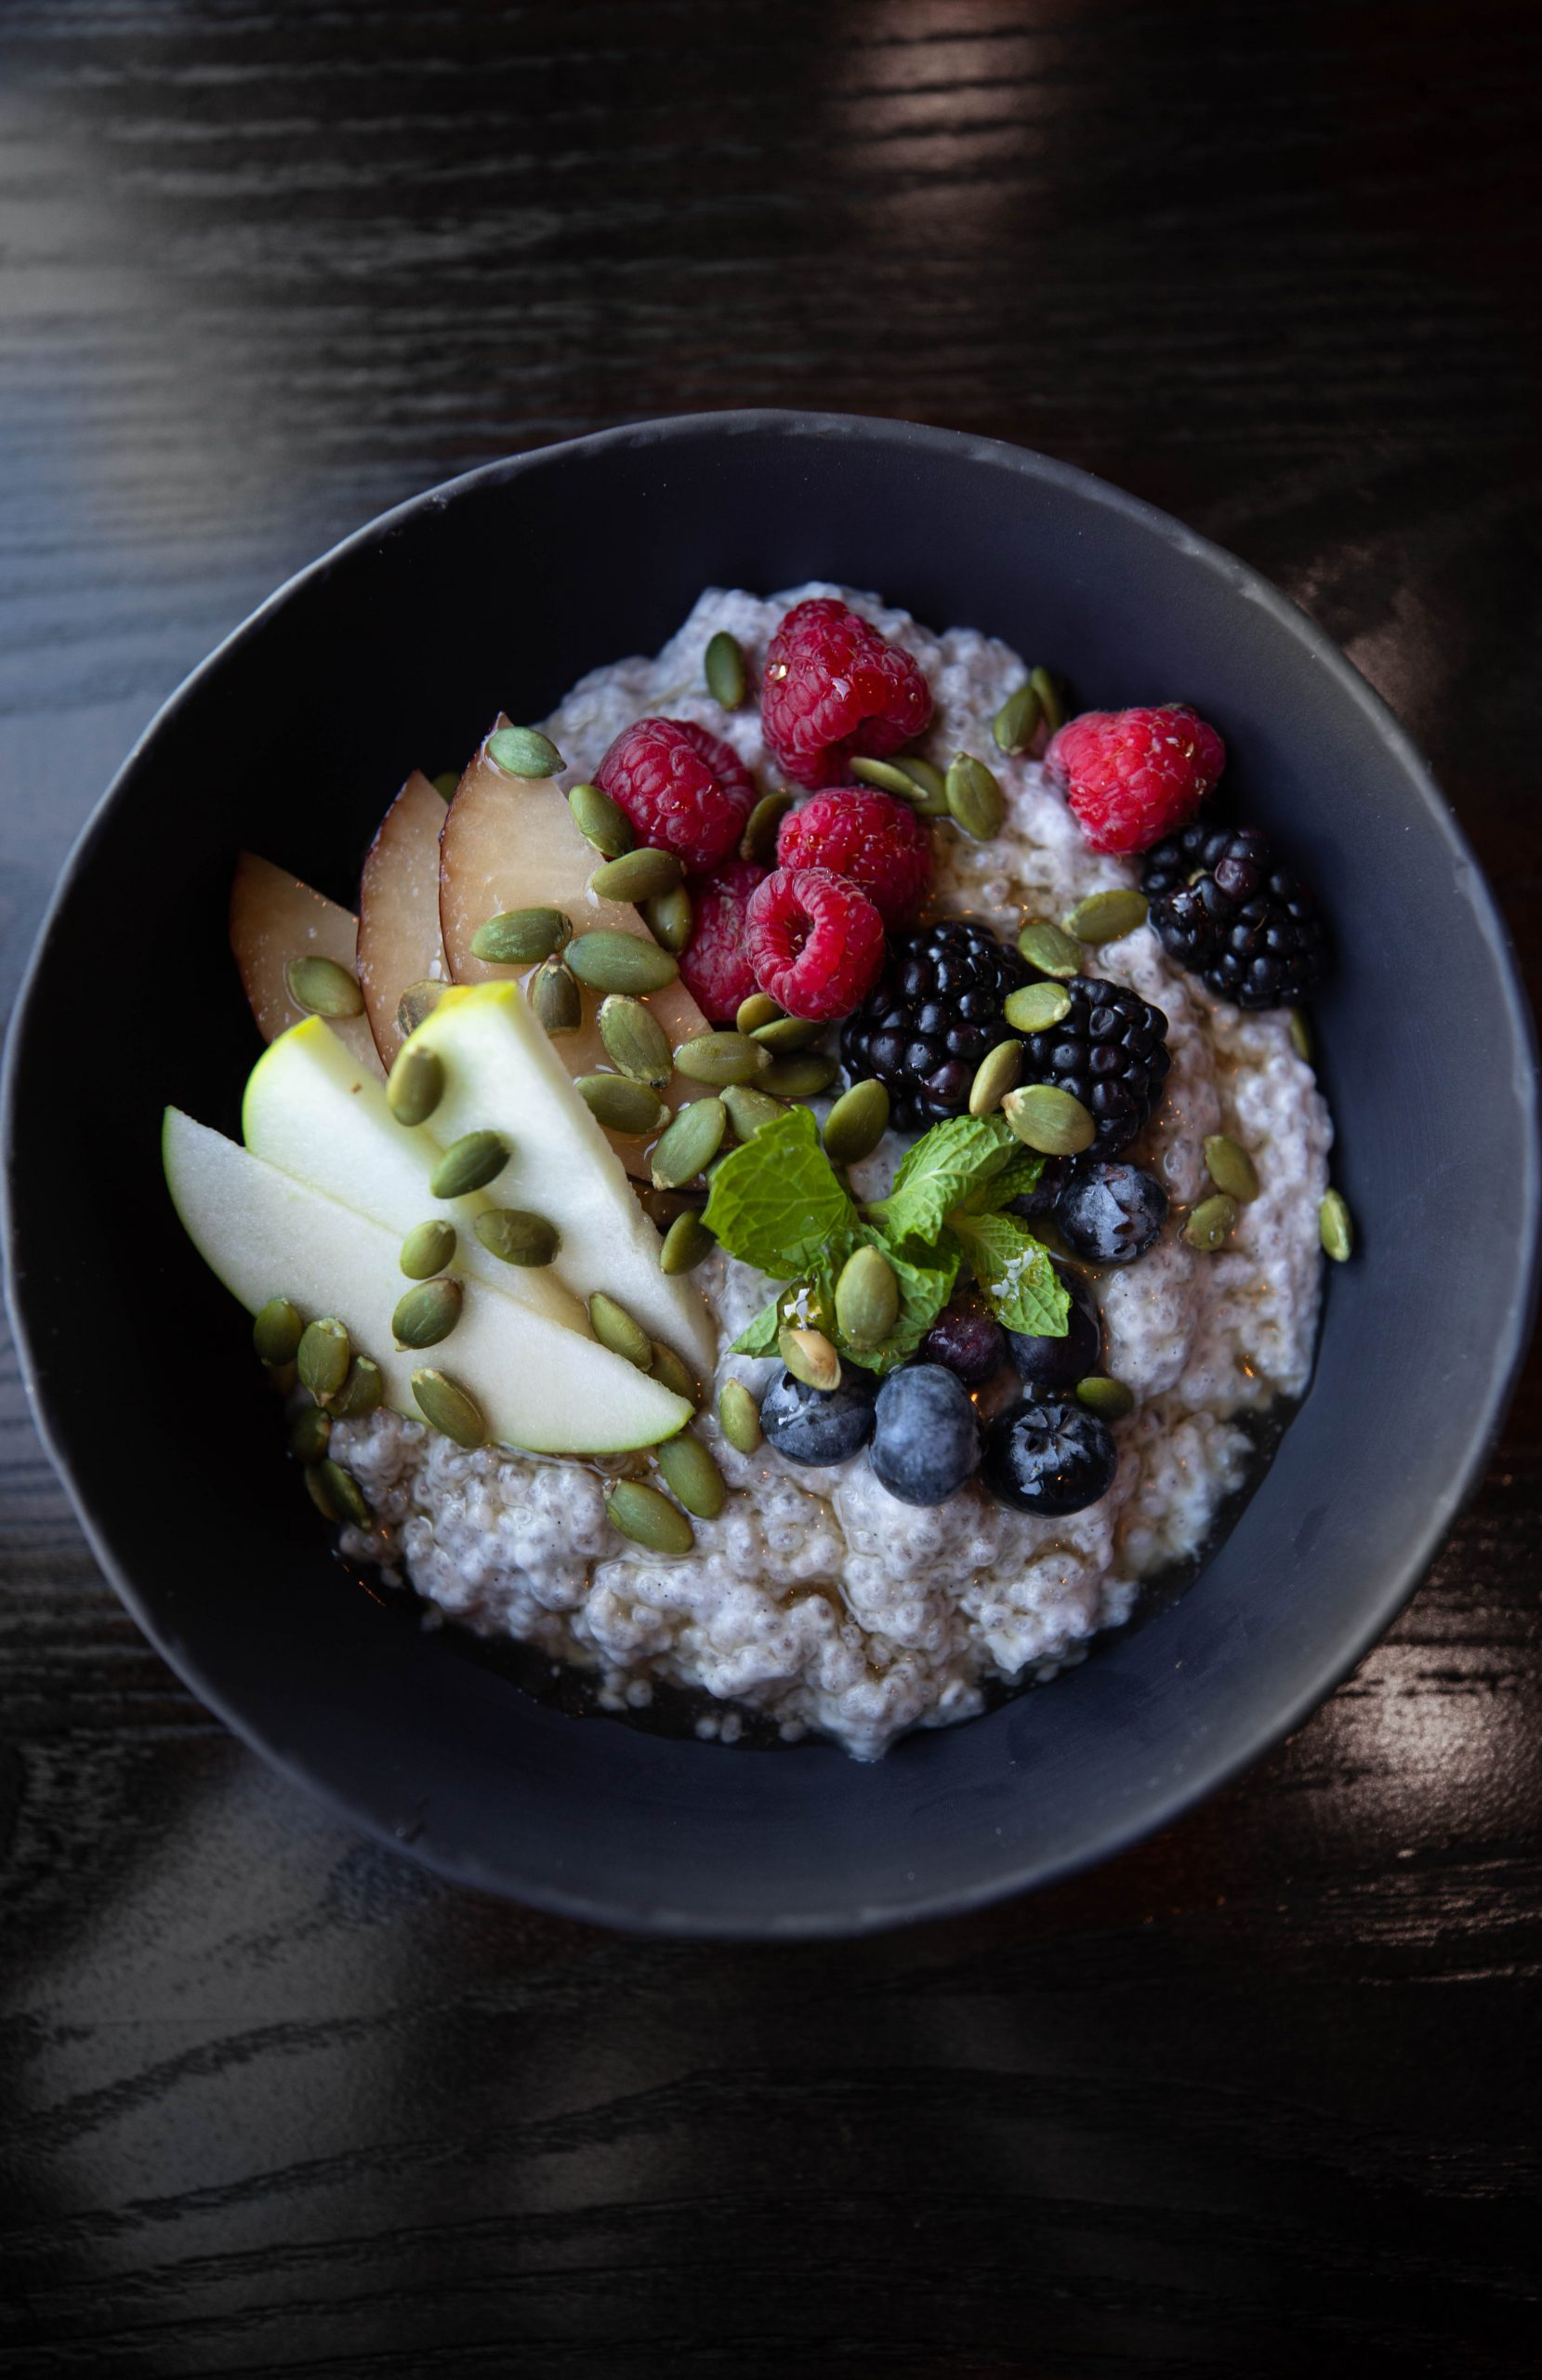 Goldfinch Tavern Chia Seed Pudding Vegan Meal Four Seasons Hotel Seattle Washington by Annie Fairfax for AnnieFairfax.com Luxury Hotels of the World Pacific Northwest Luxury 5-Star Hotels